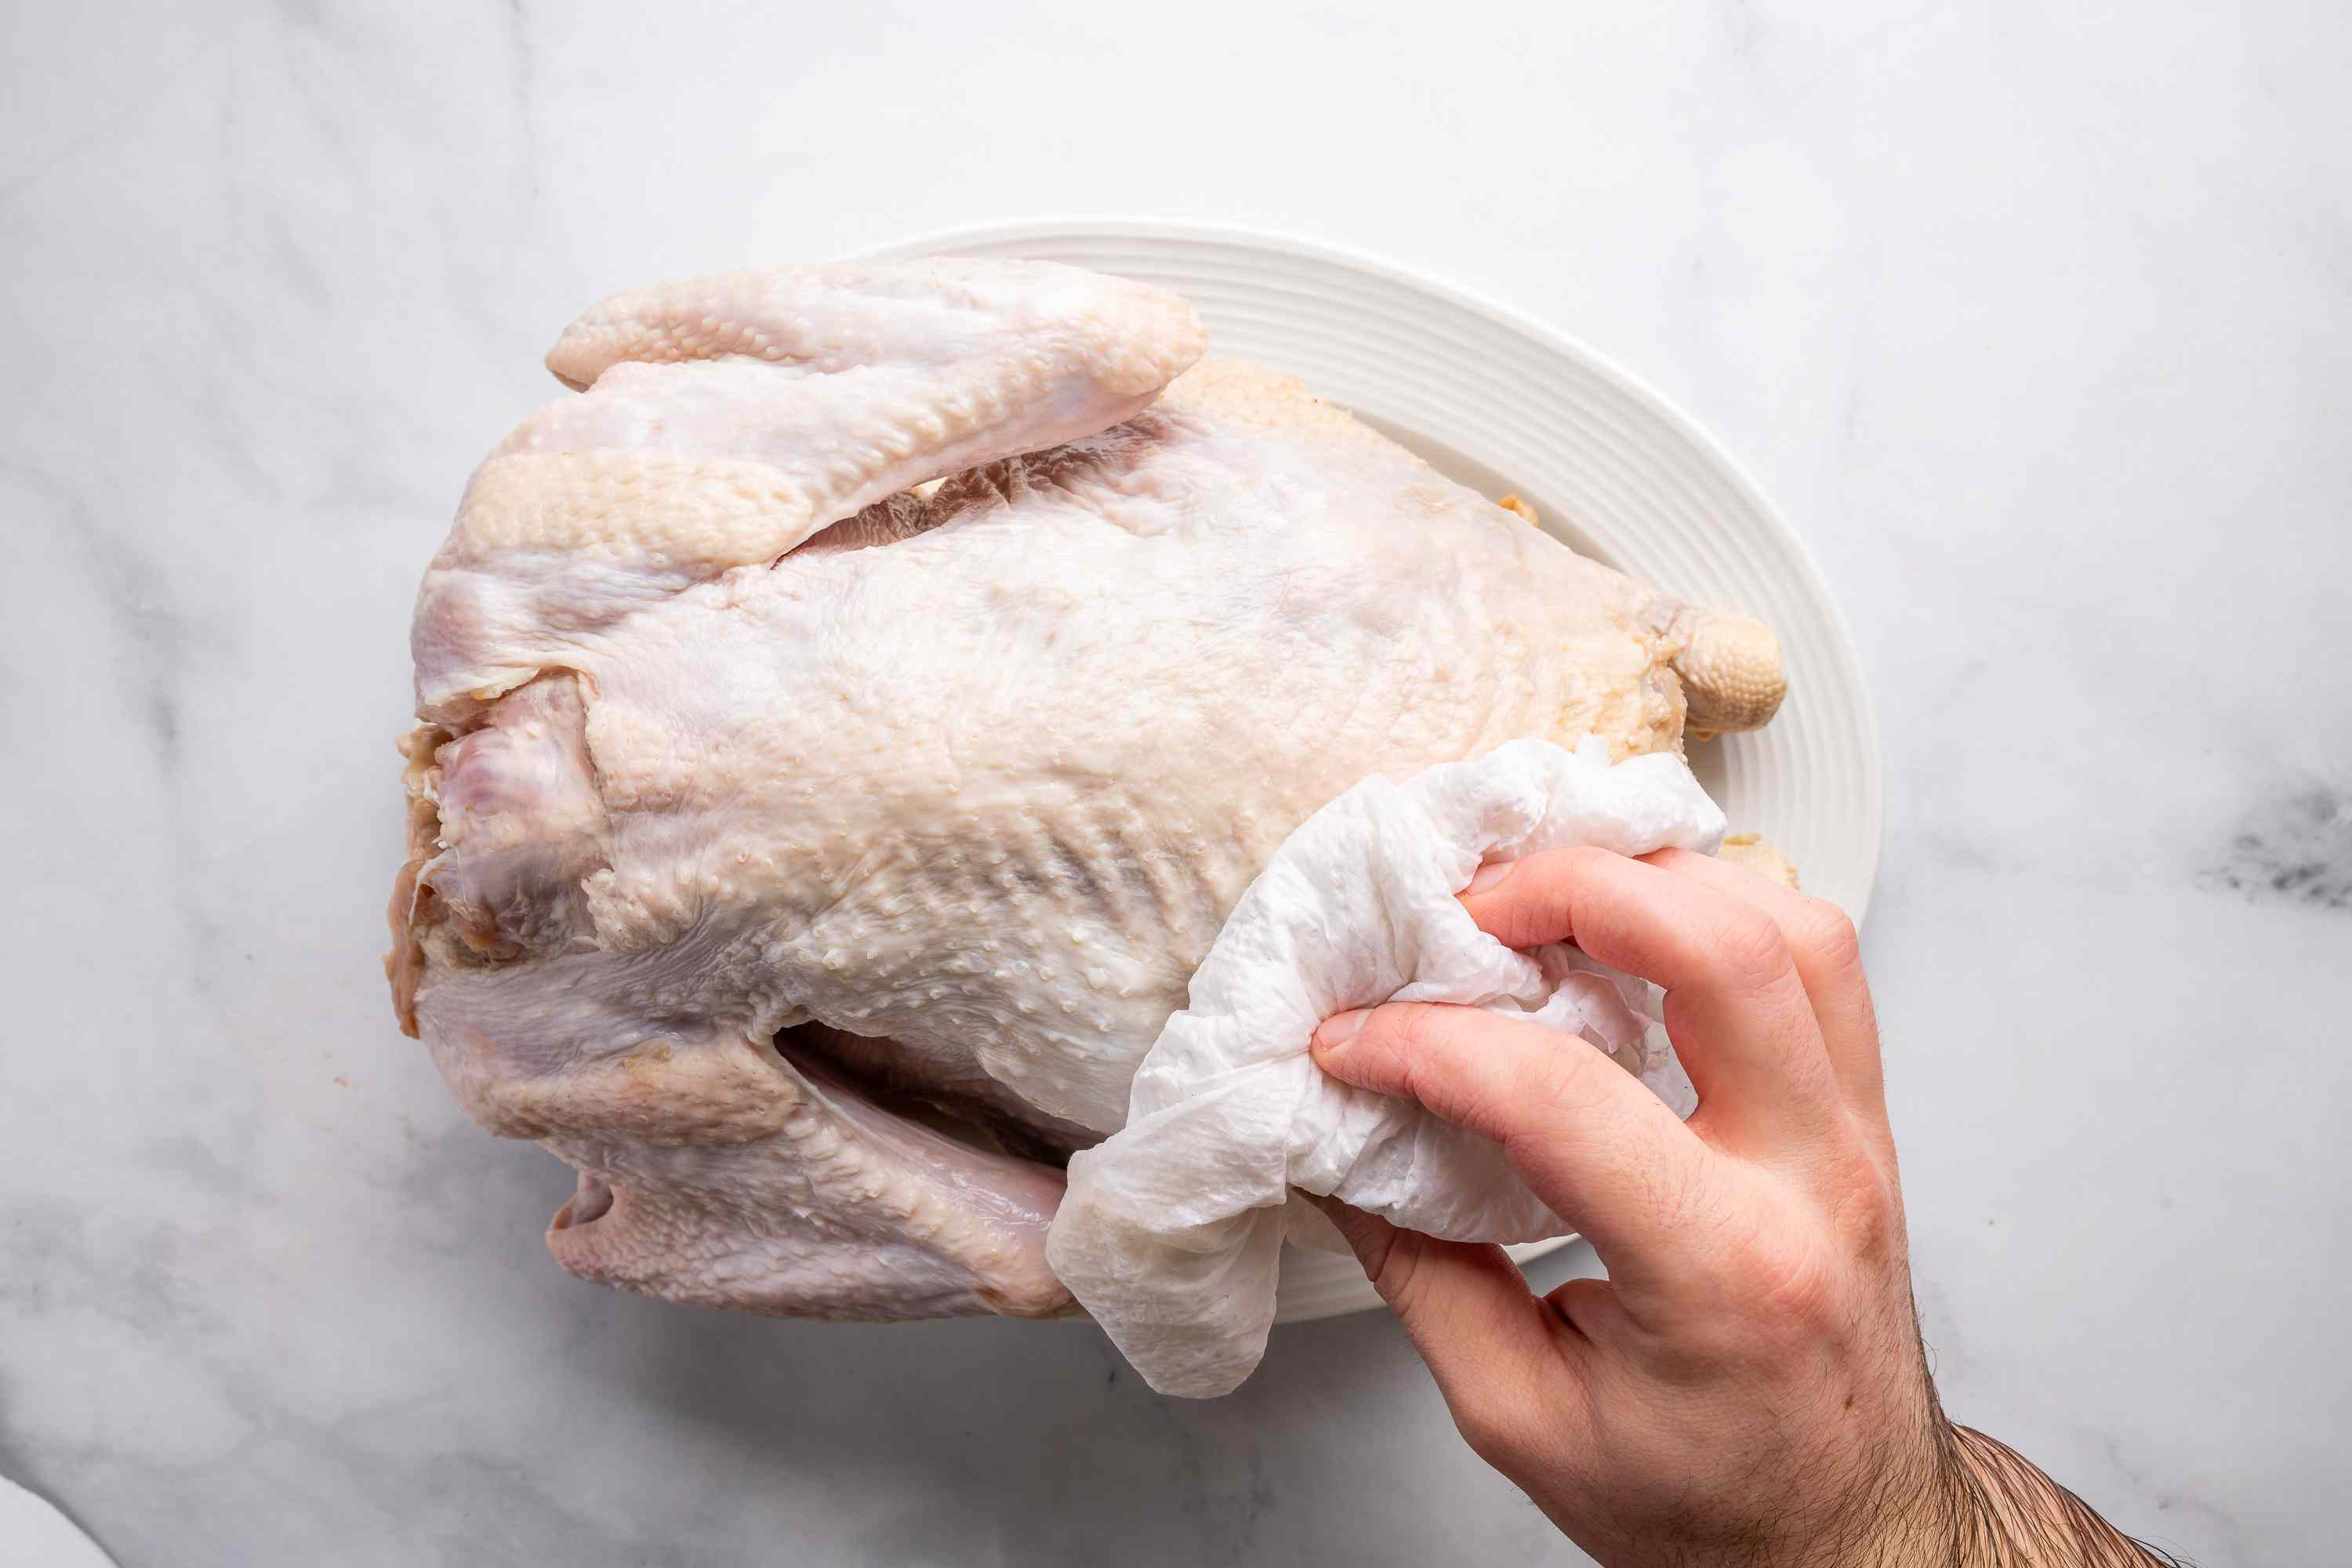 Remove the turkey from brine and pat dry with paper towels